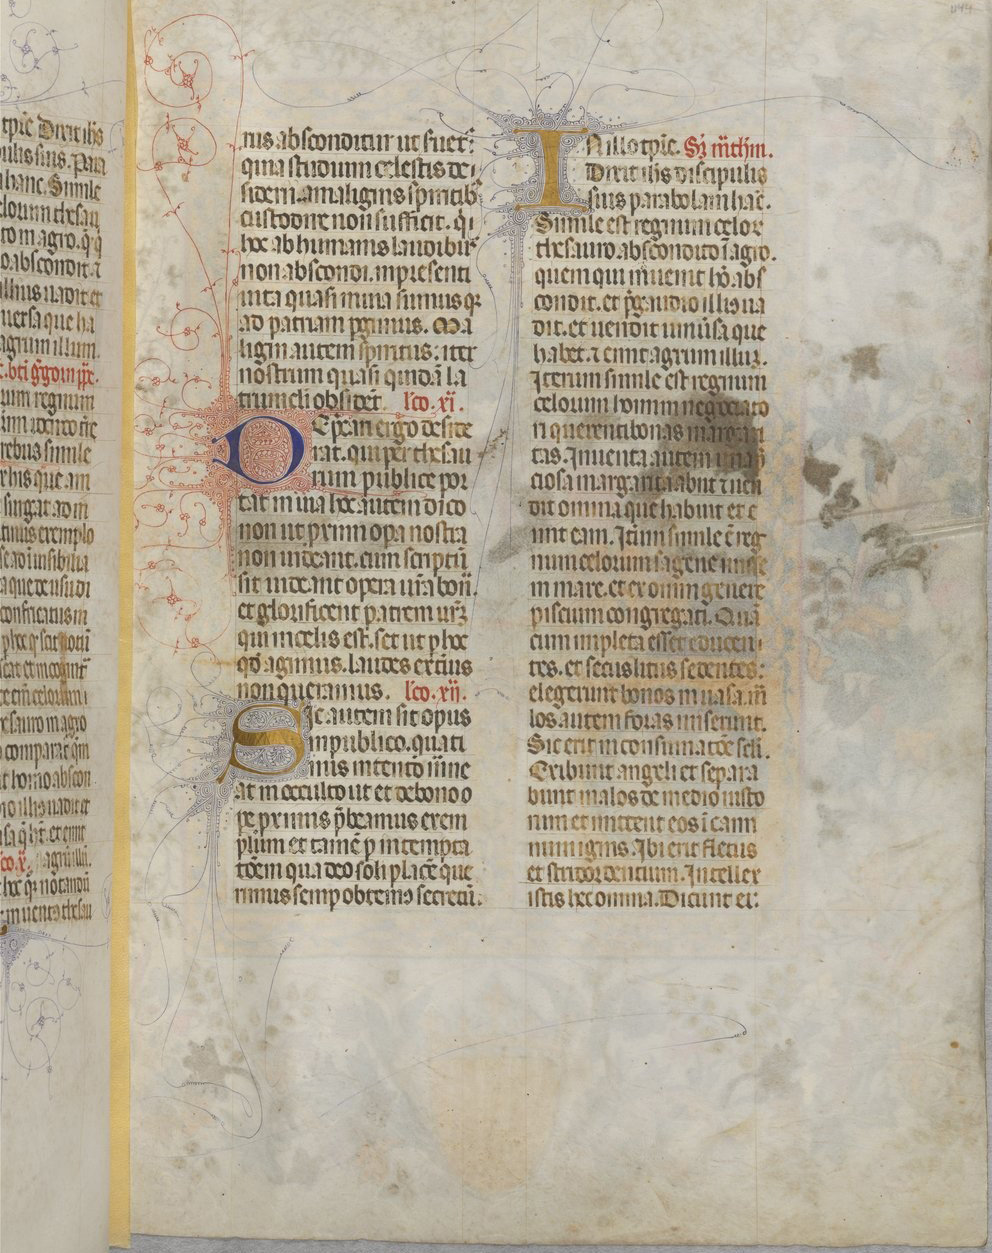 The Breviary of Martin of Aragon f889, Catalonia, between 1398 and 1410 and around 1420-1430, French National Library, Manuscripts, Rothschild 2529 Parchment, 454 ff., 350 x 252 mm. , In Copyright